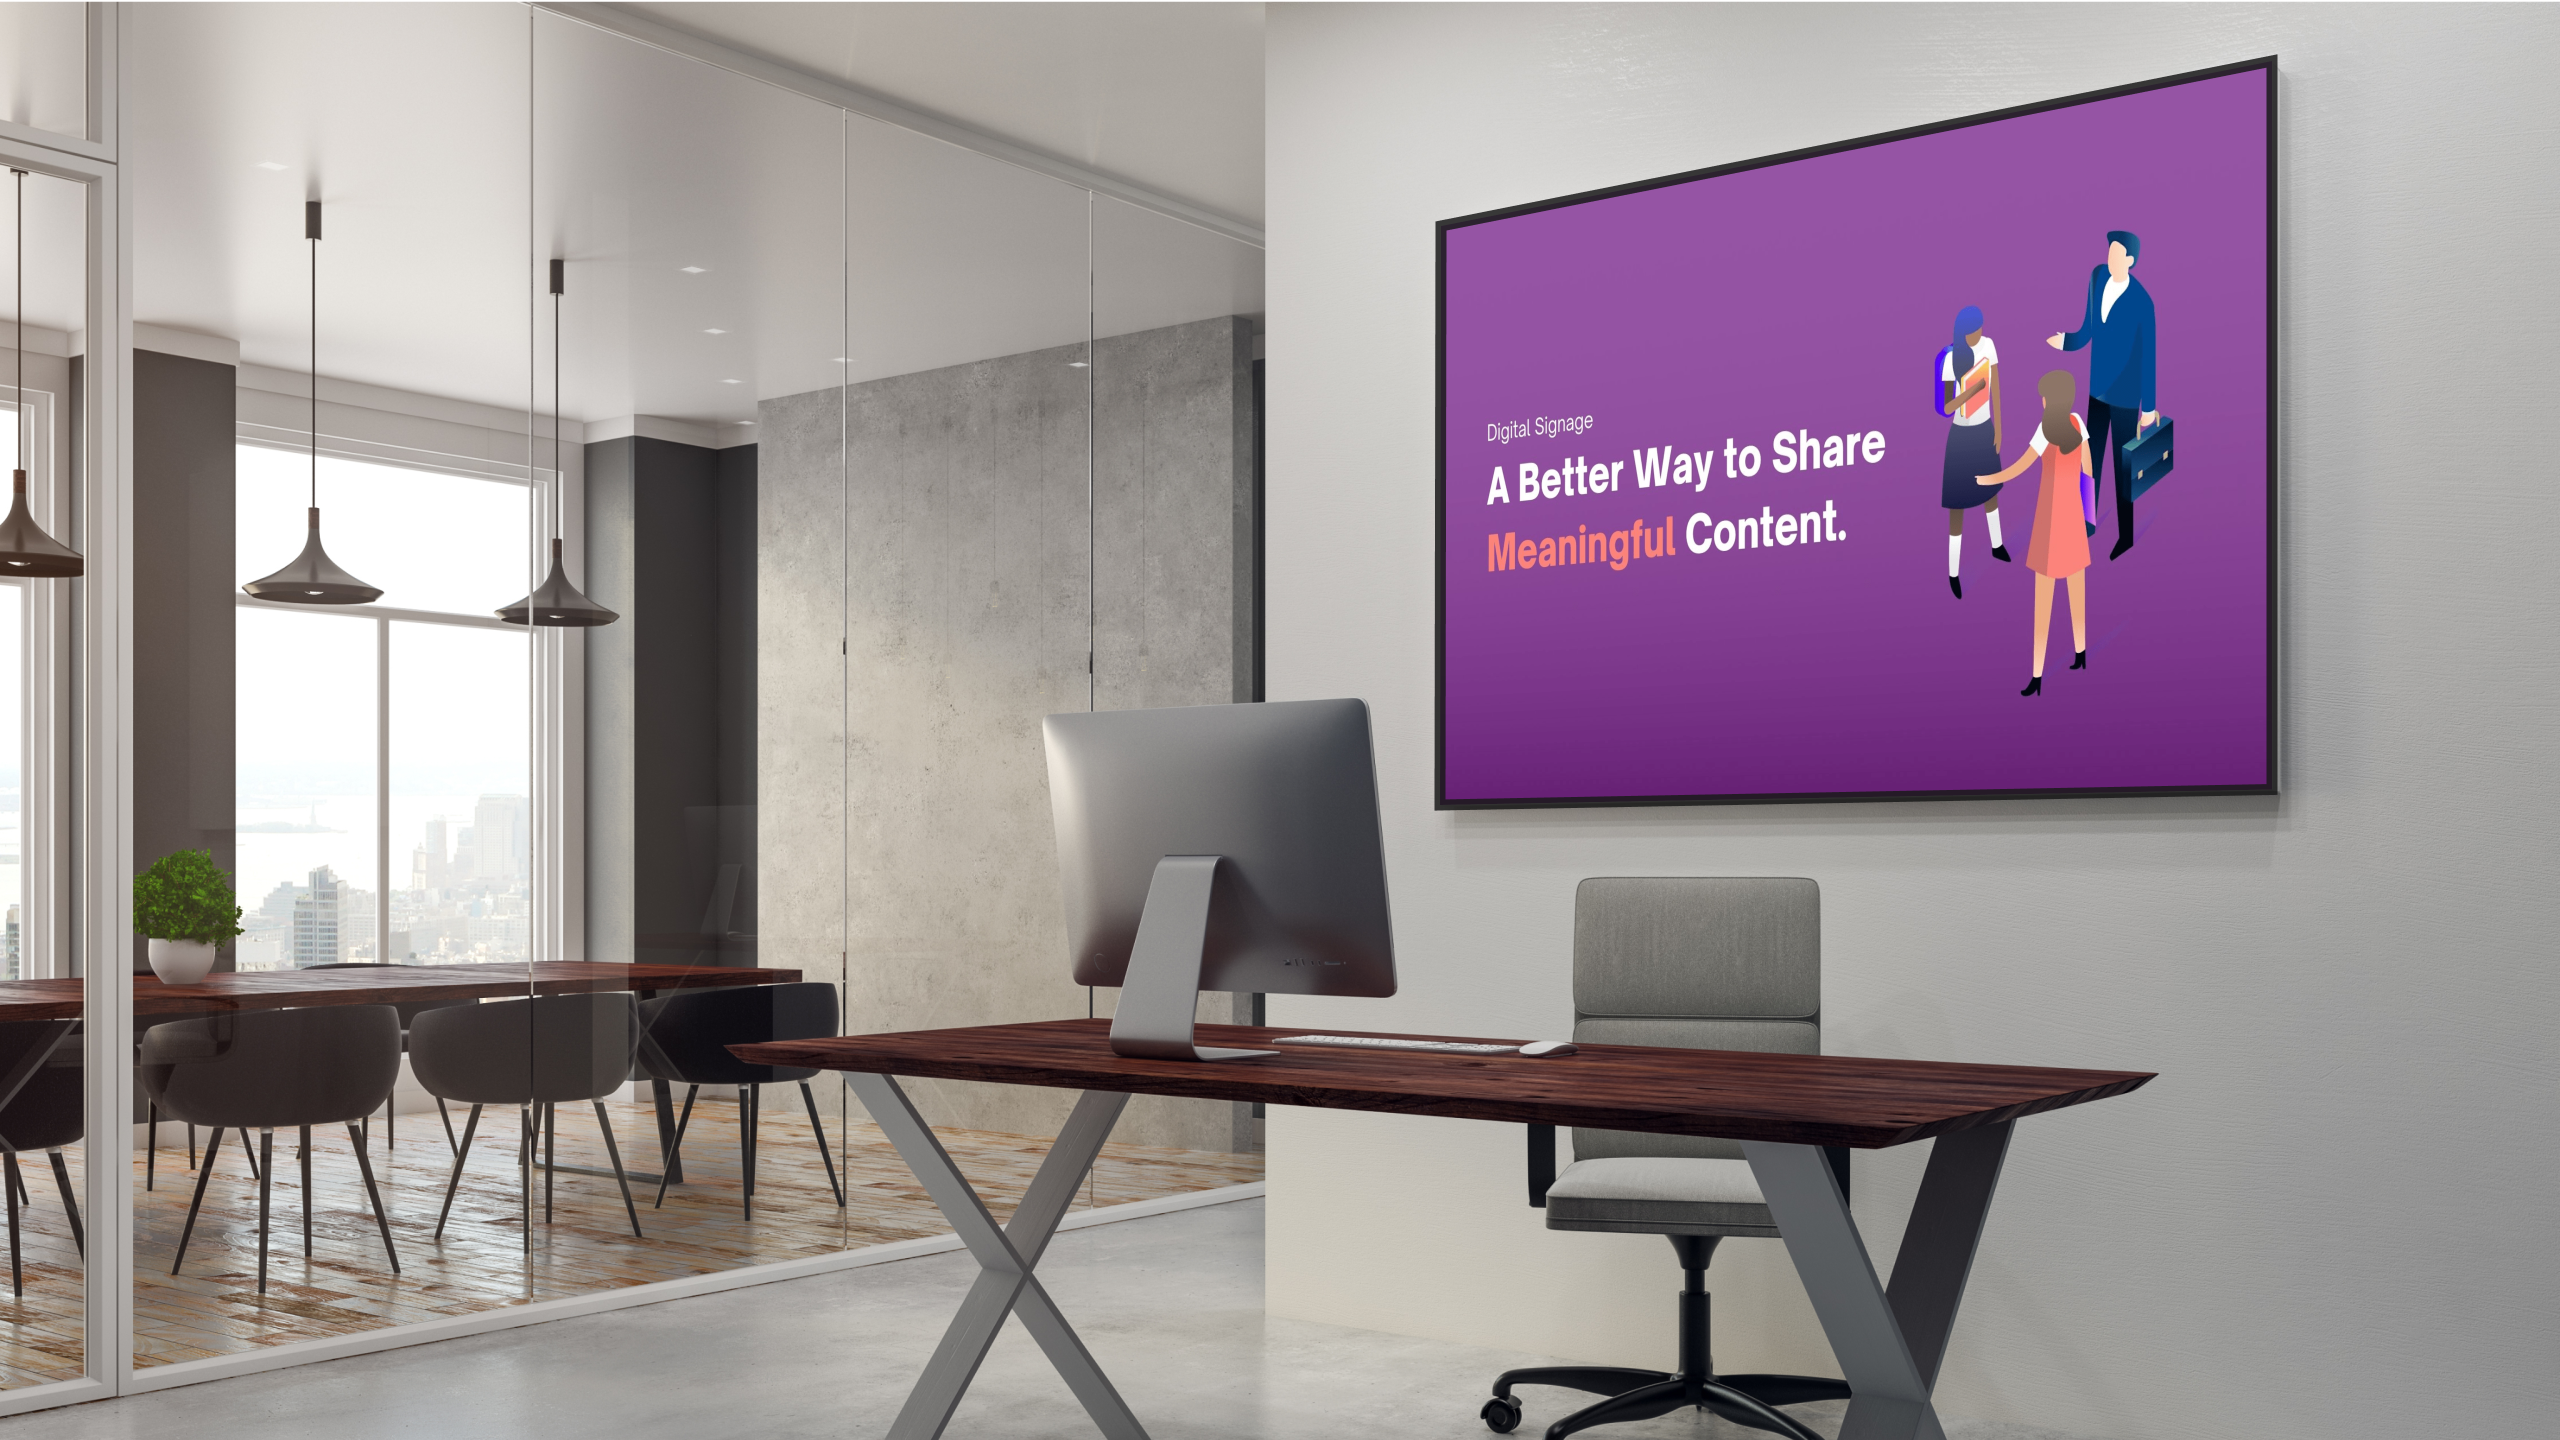 Raspberry Pi for Digital Signage: Why We Changed Our Minds